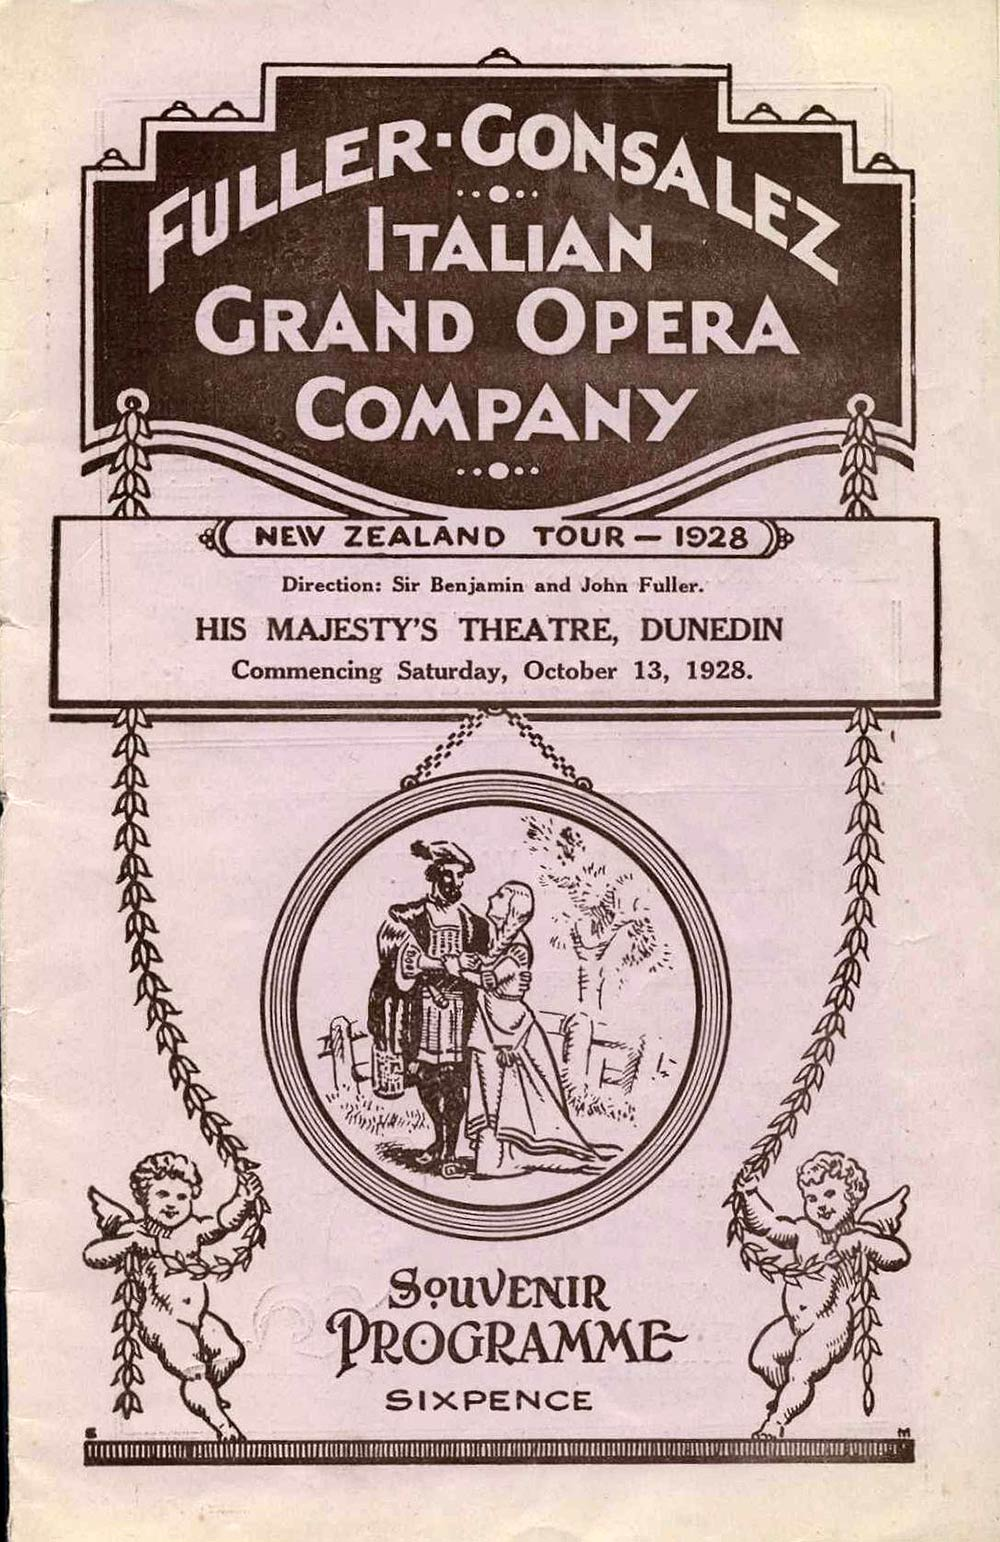 <em>Lucia di Lammermoor</em>. Gaetano Donizetti; from Sir Walter Scott's novel 'The Bride of Lammermoor'. (Fuller-Gonsalez Italian Grand Opera Company). His Majesty's Theatre, Dunedin, Oct. 13, 1928.